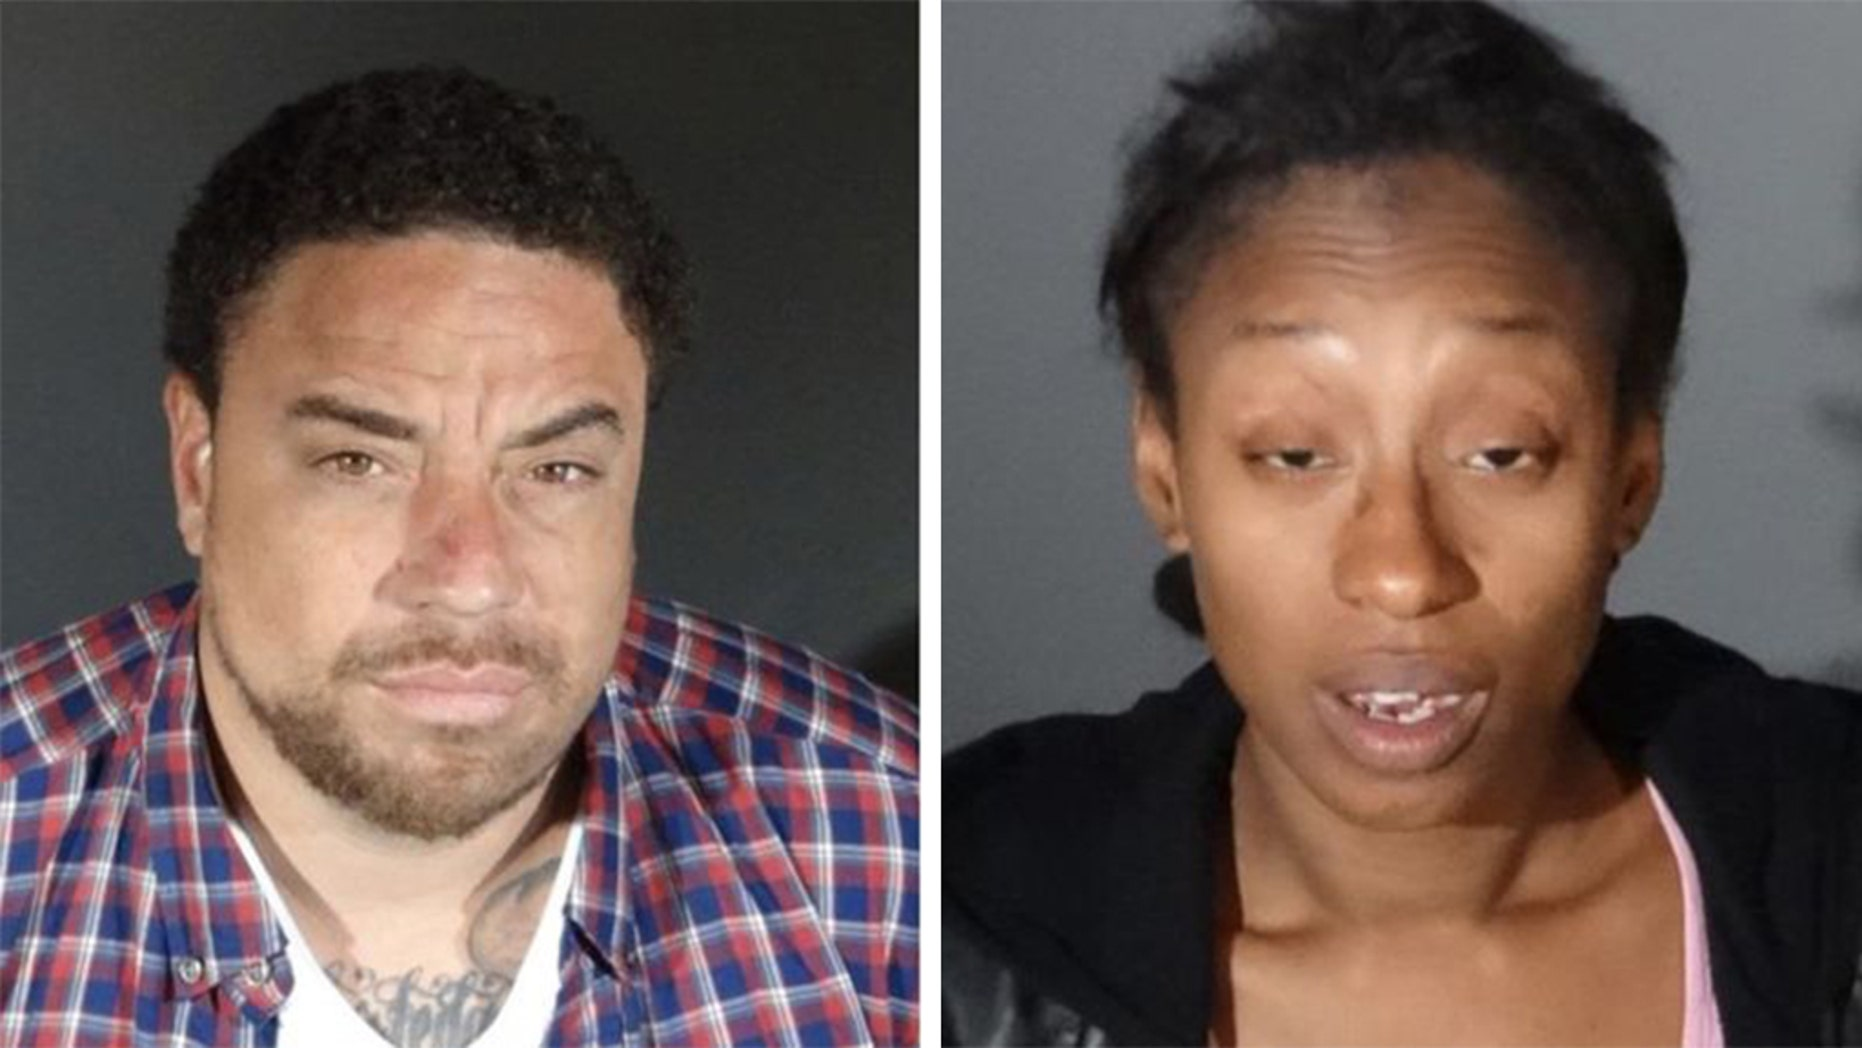 California authorities Wednesday announced charges against parents of a little boy nearly two months after allegedly putting their son's body in a suitcase after his death, before throwing away the luggage.